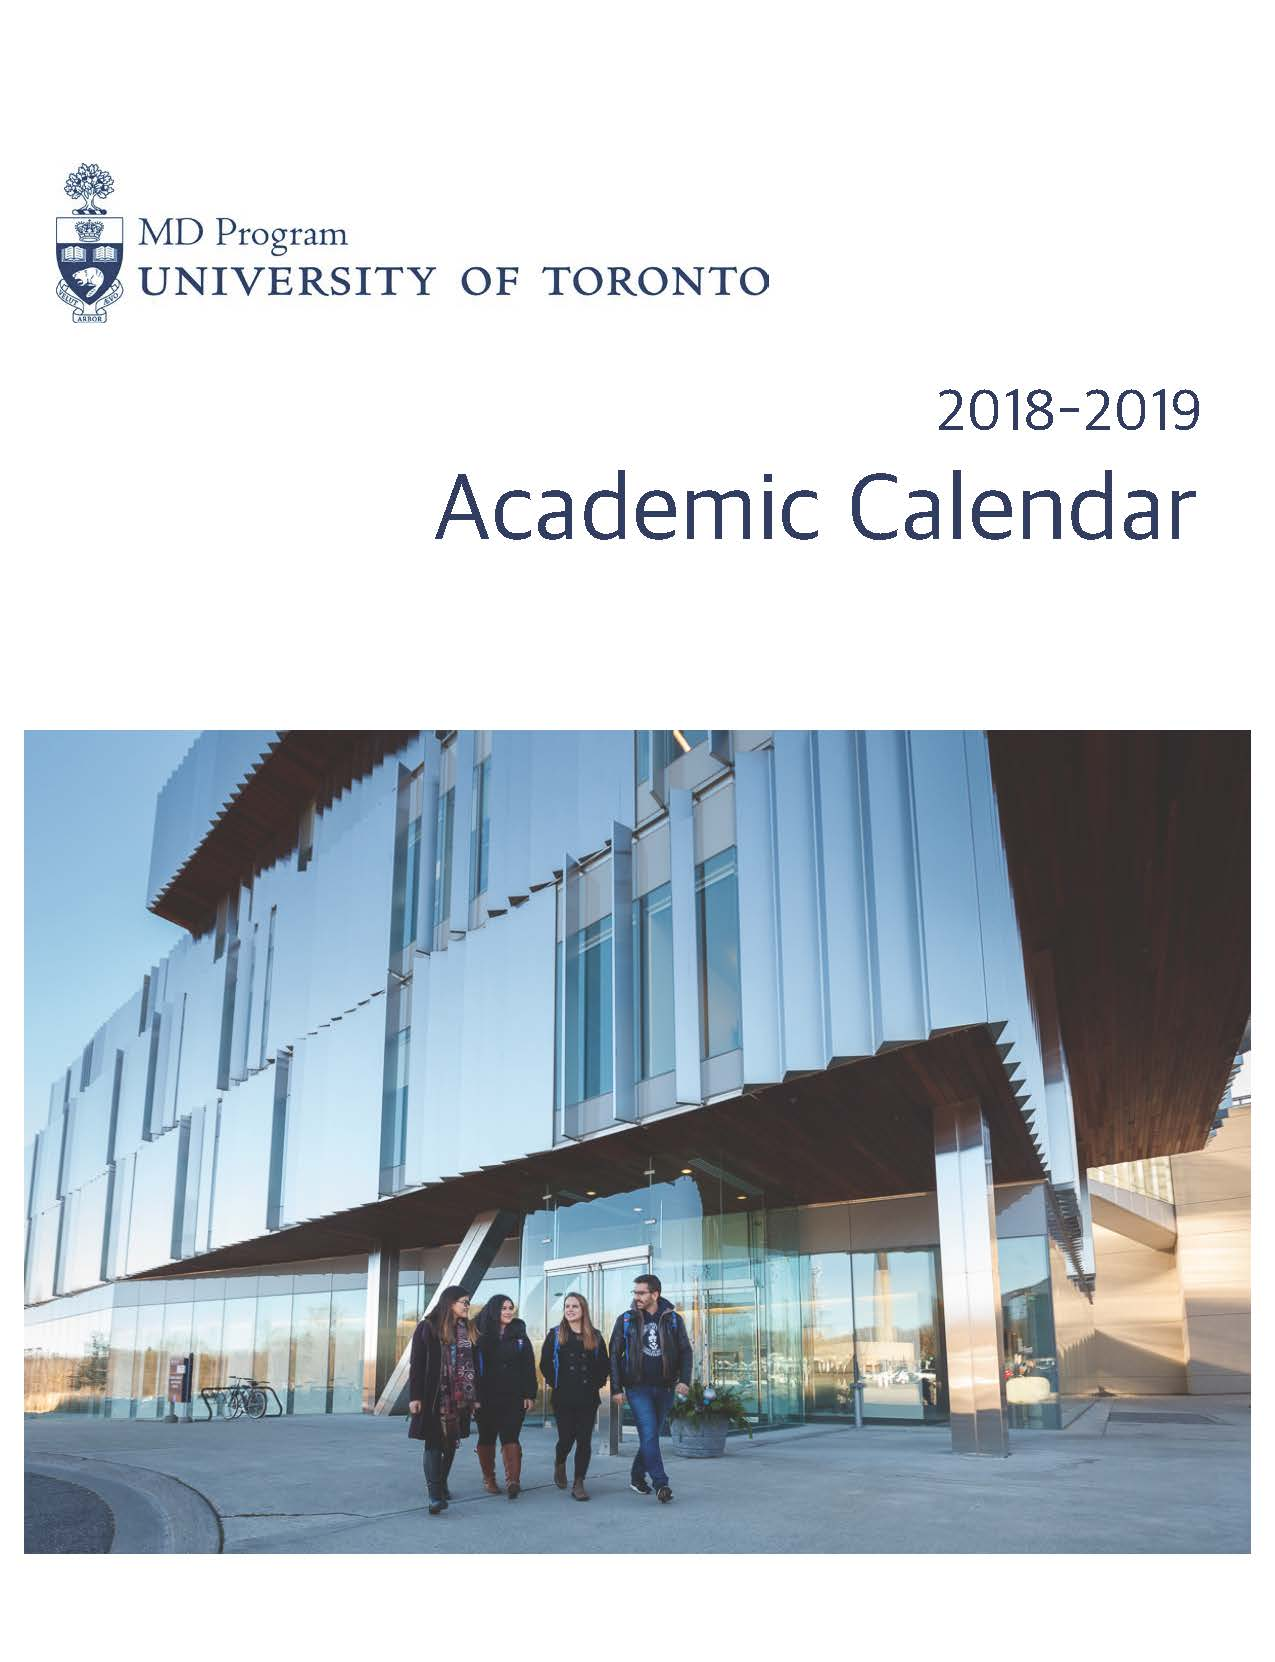 2018-2019 MD Program Academic Calendar Cover